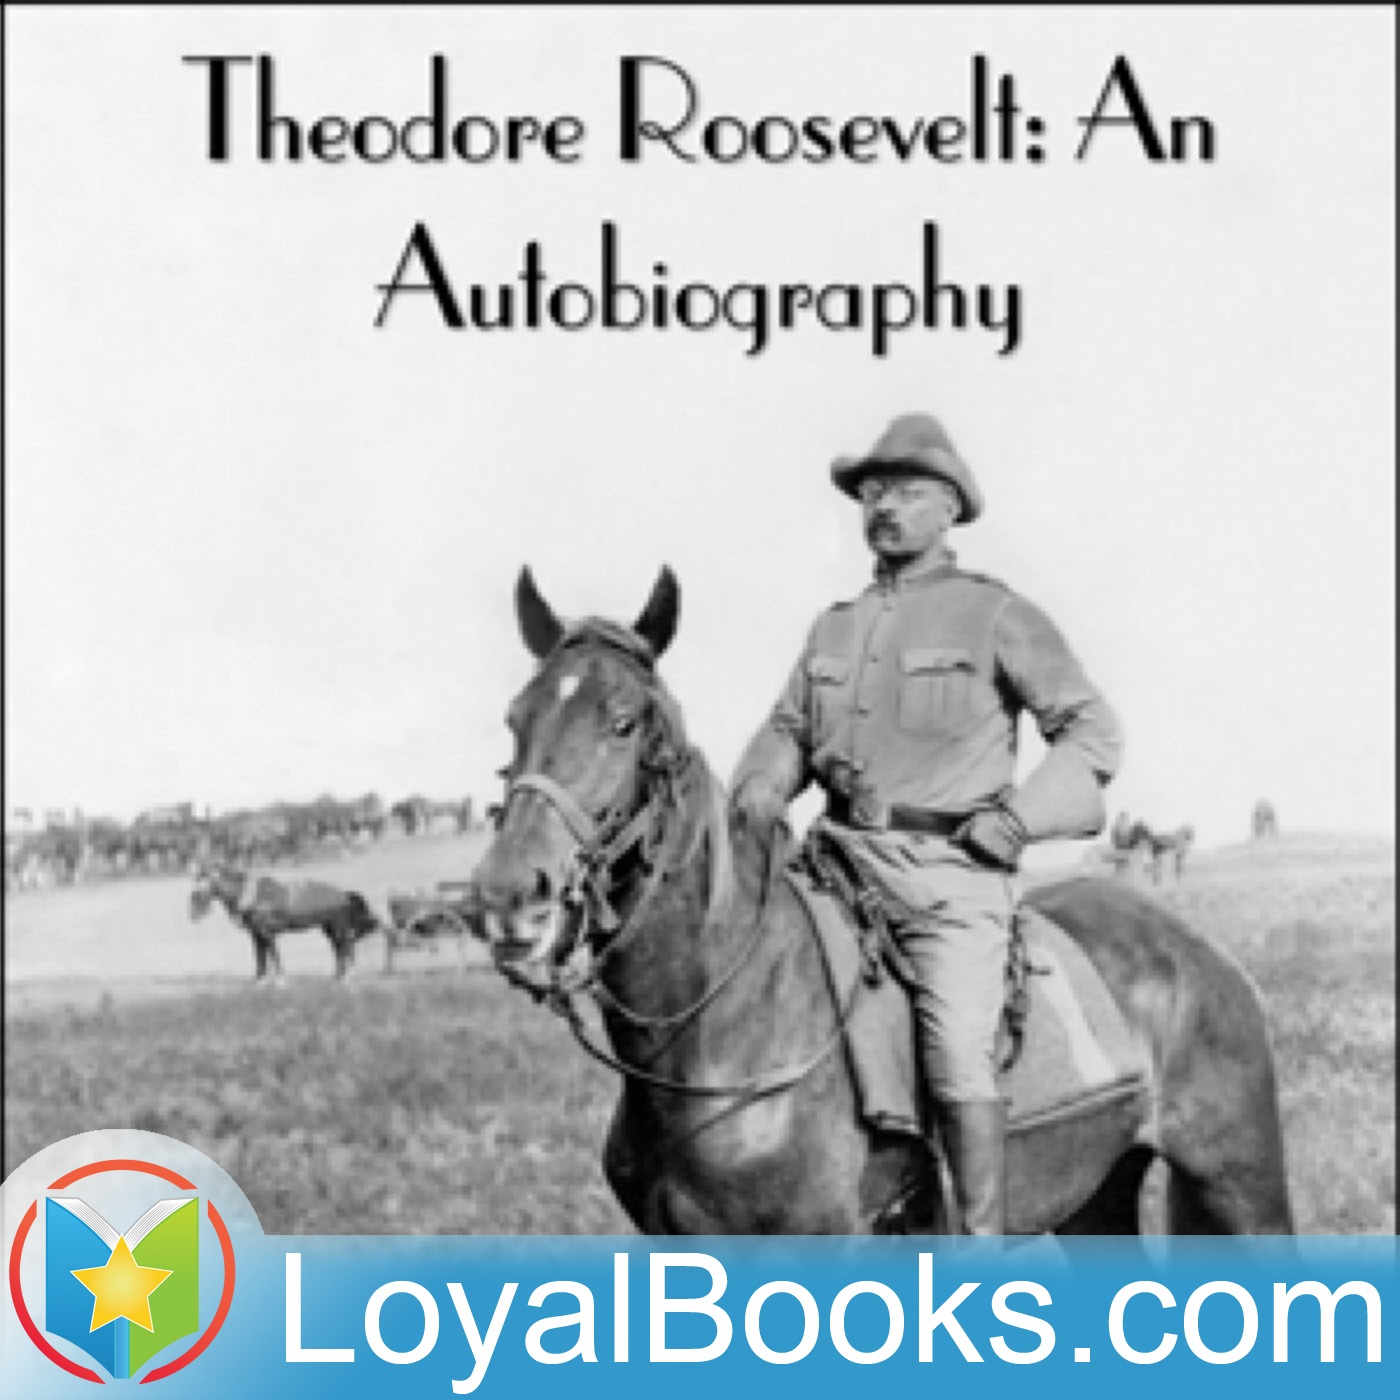 <![CDATA[Theodore Roosevelt: An Autobiography by Theodore Roosevelt]]>